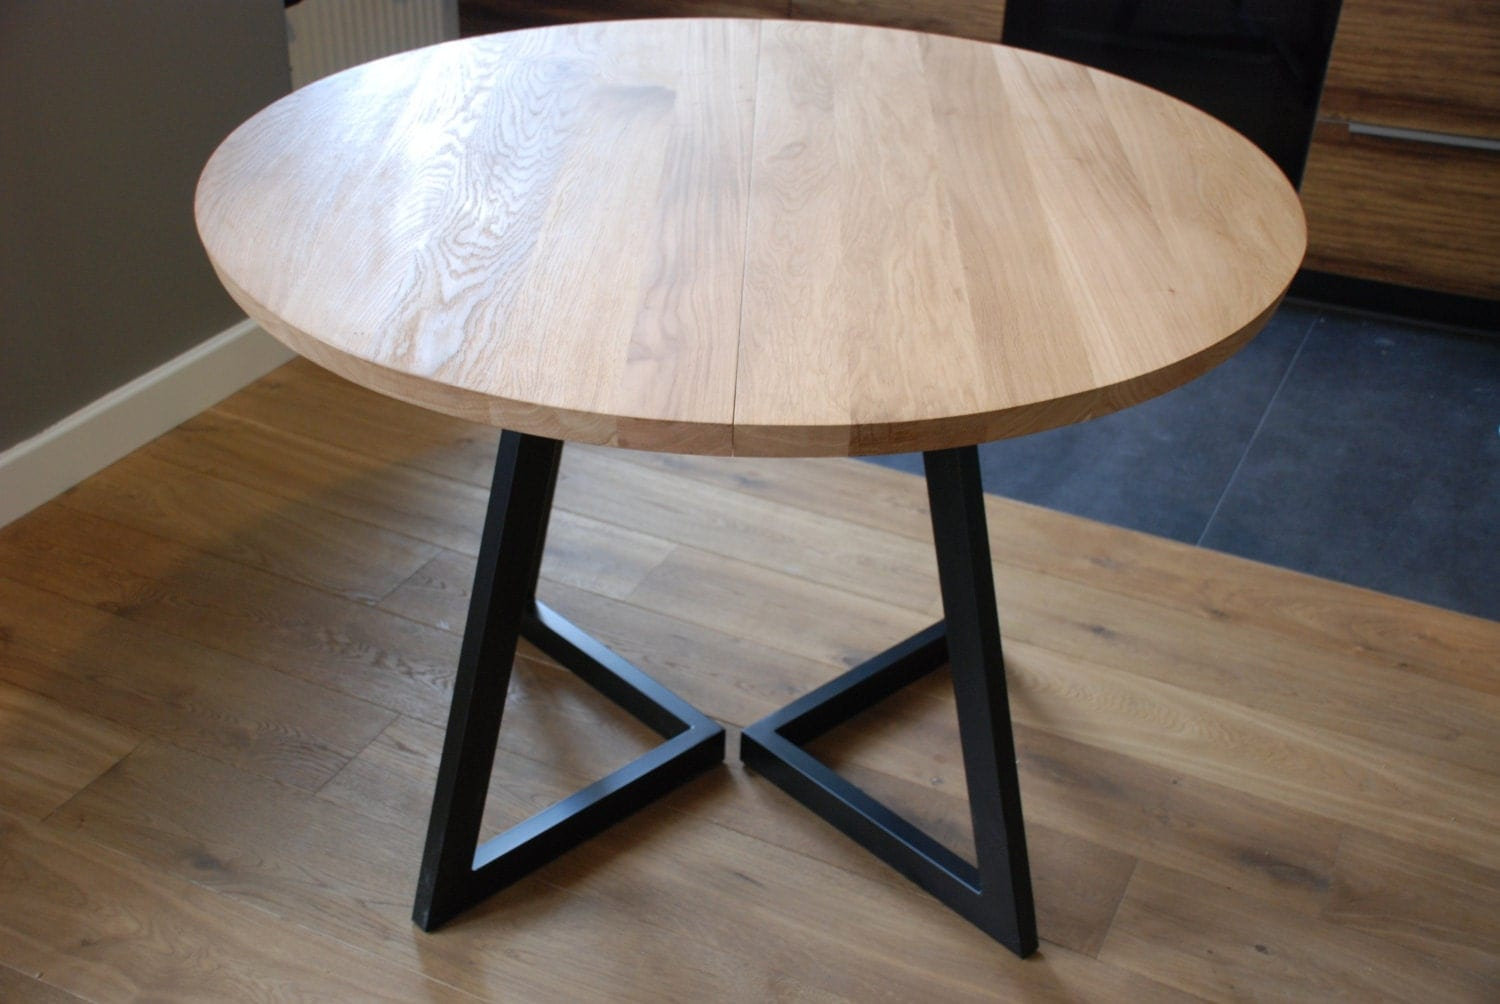 Bois et table ronde rallonges design moderne en acier for Table ronde design rallonge